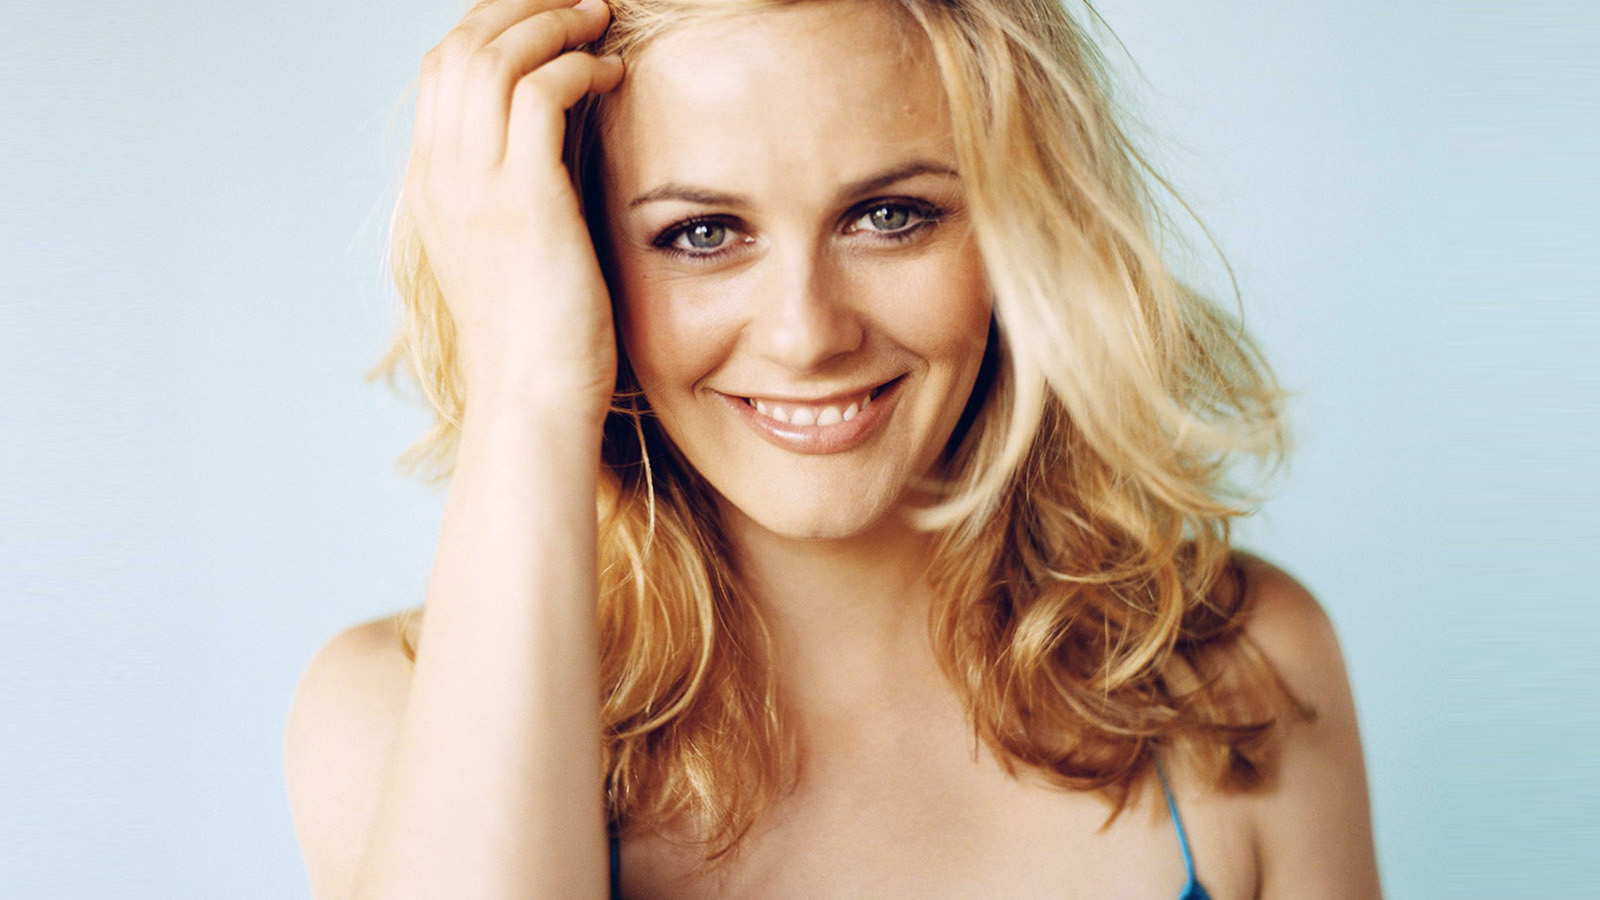 actress celebrity blonde - photo #2